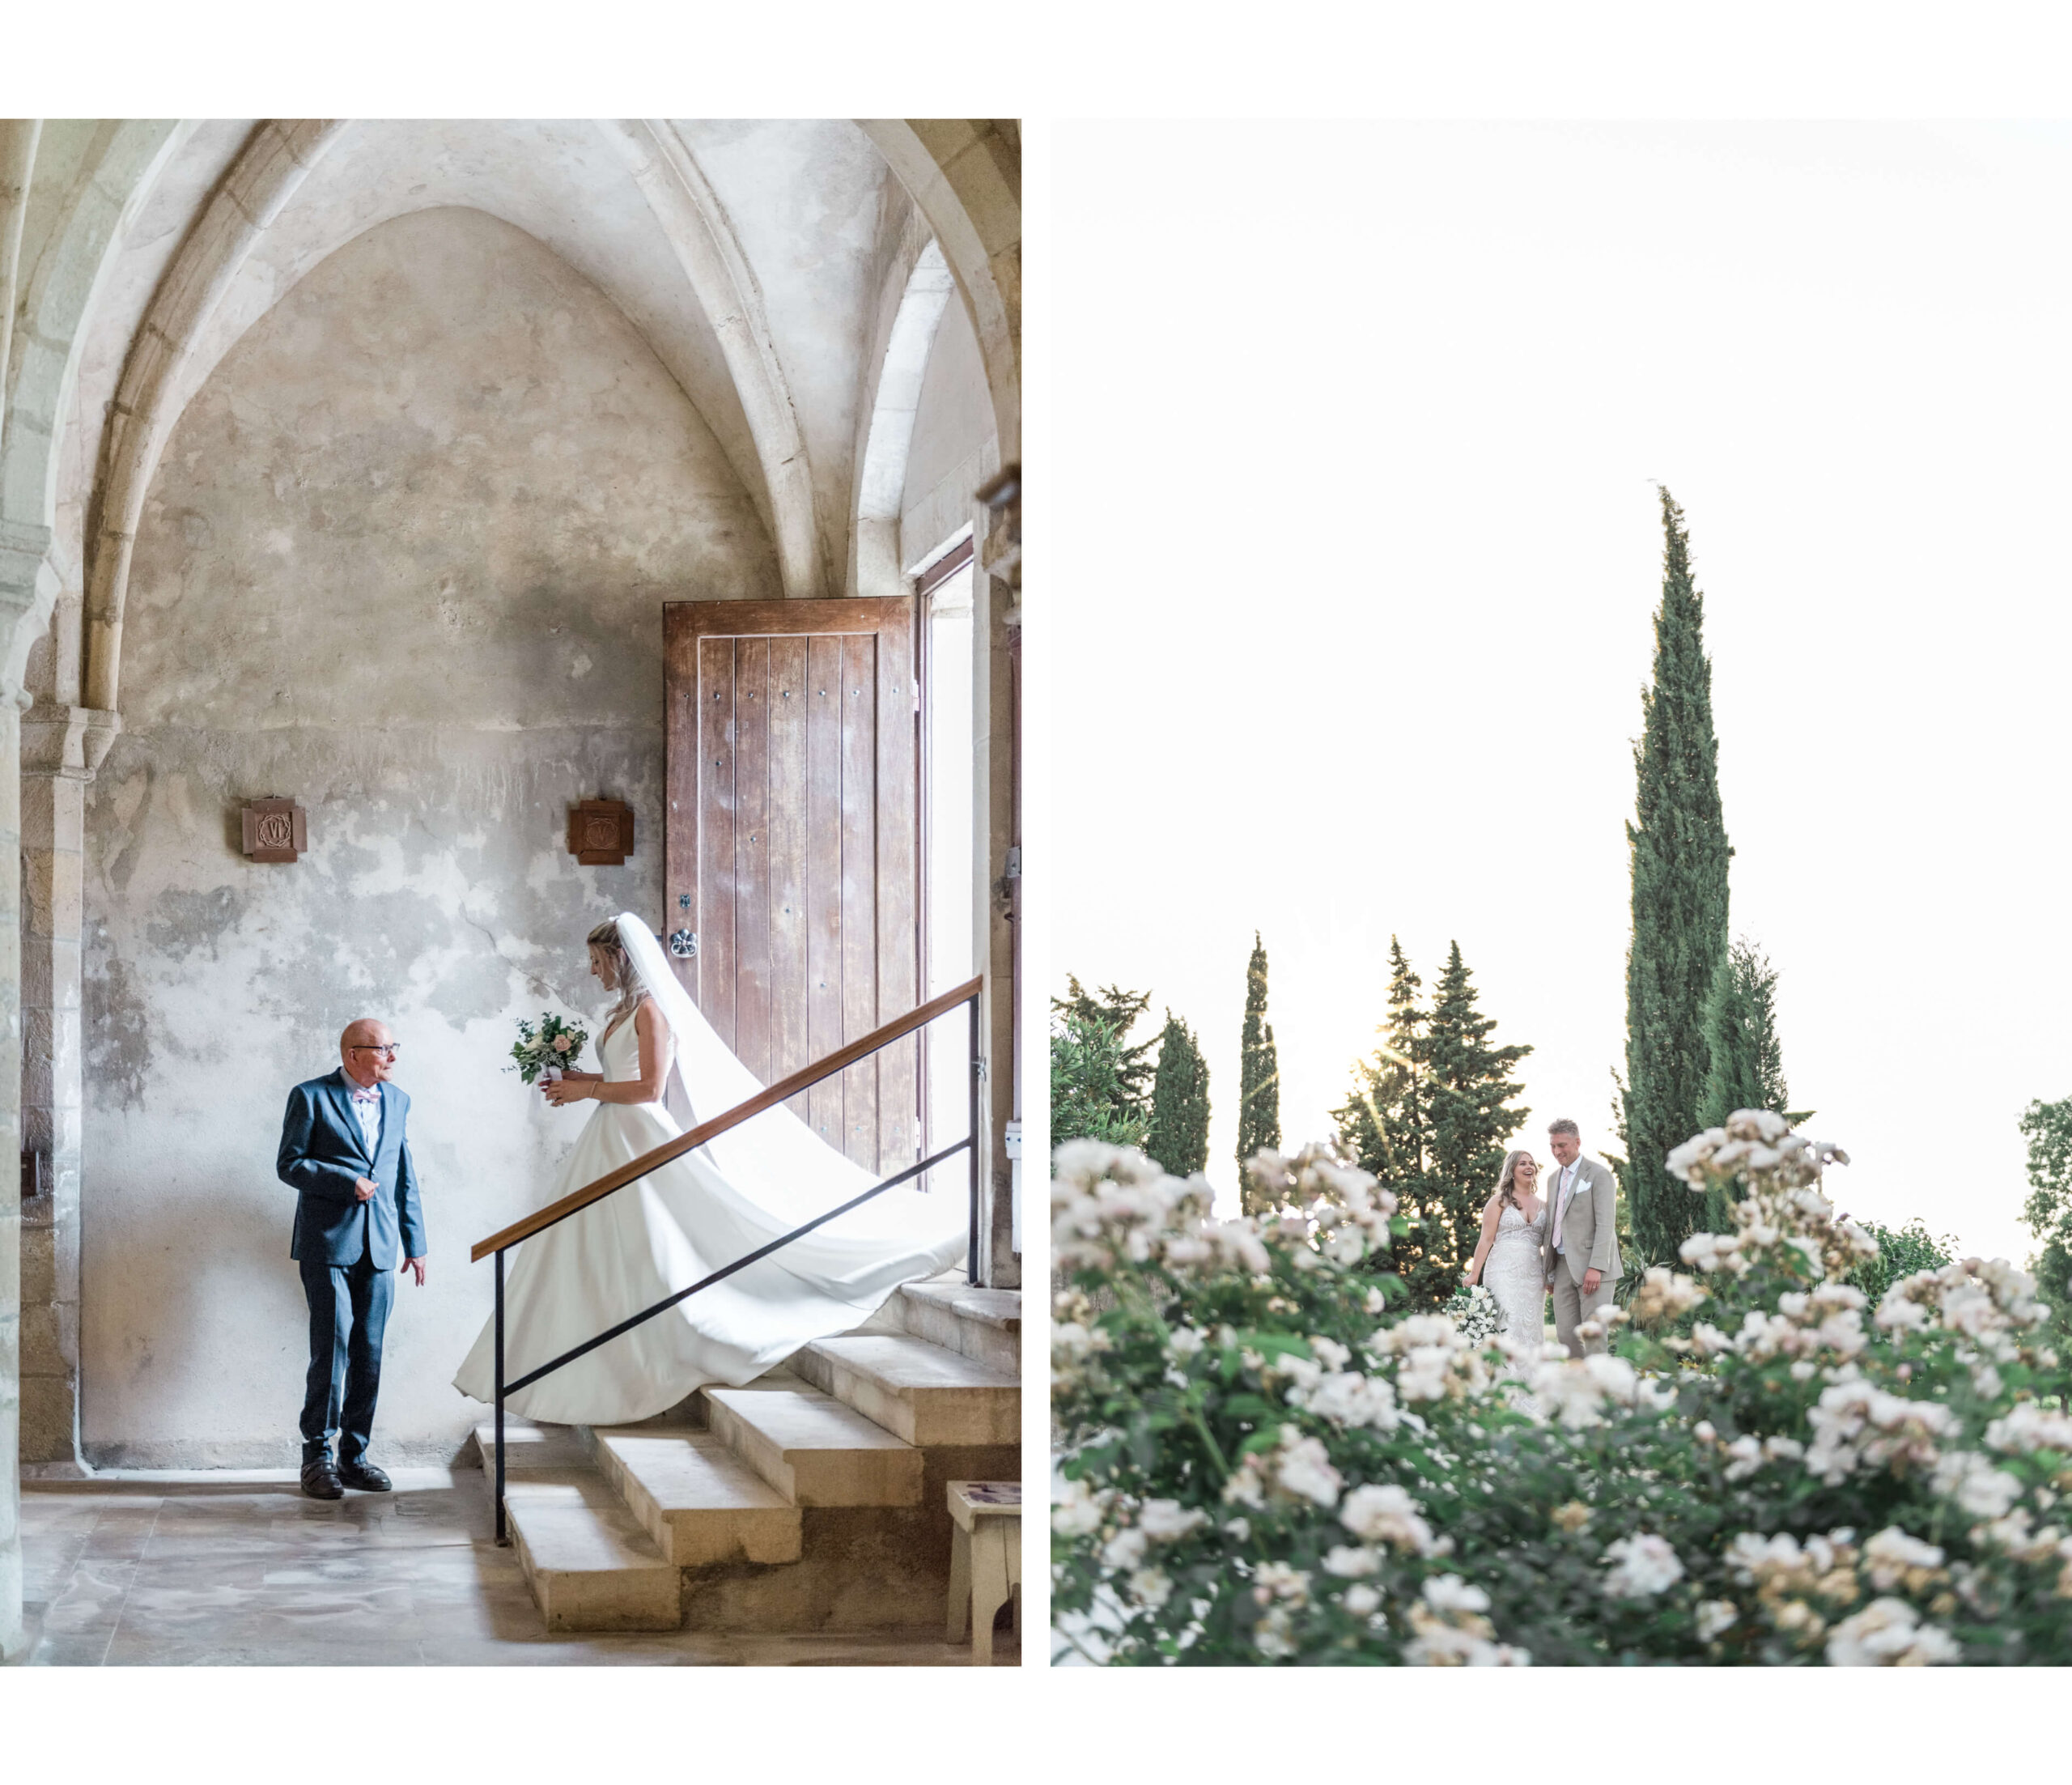 Weddings in France - A bride walking into church towards her father and a bride and groom smiling next to a cypress